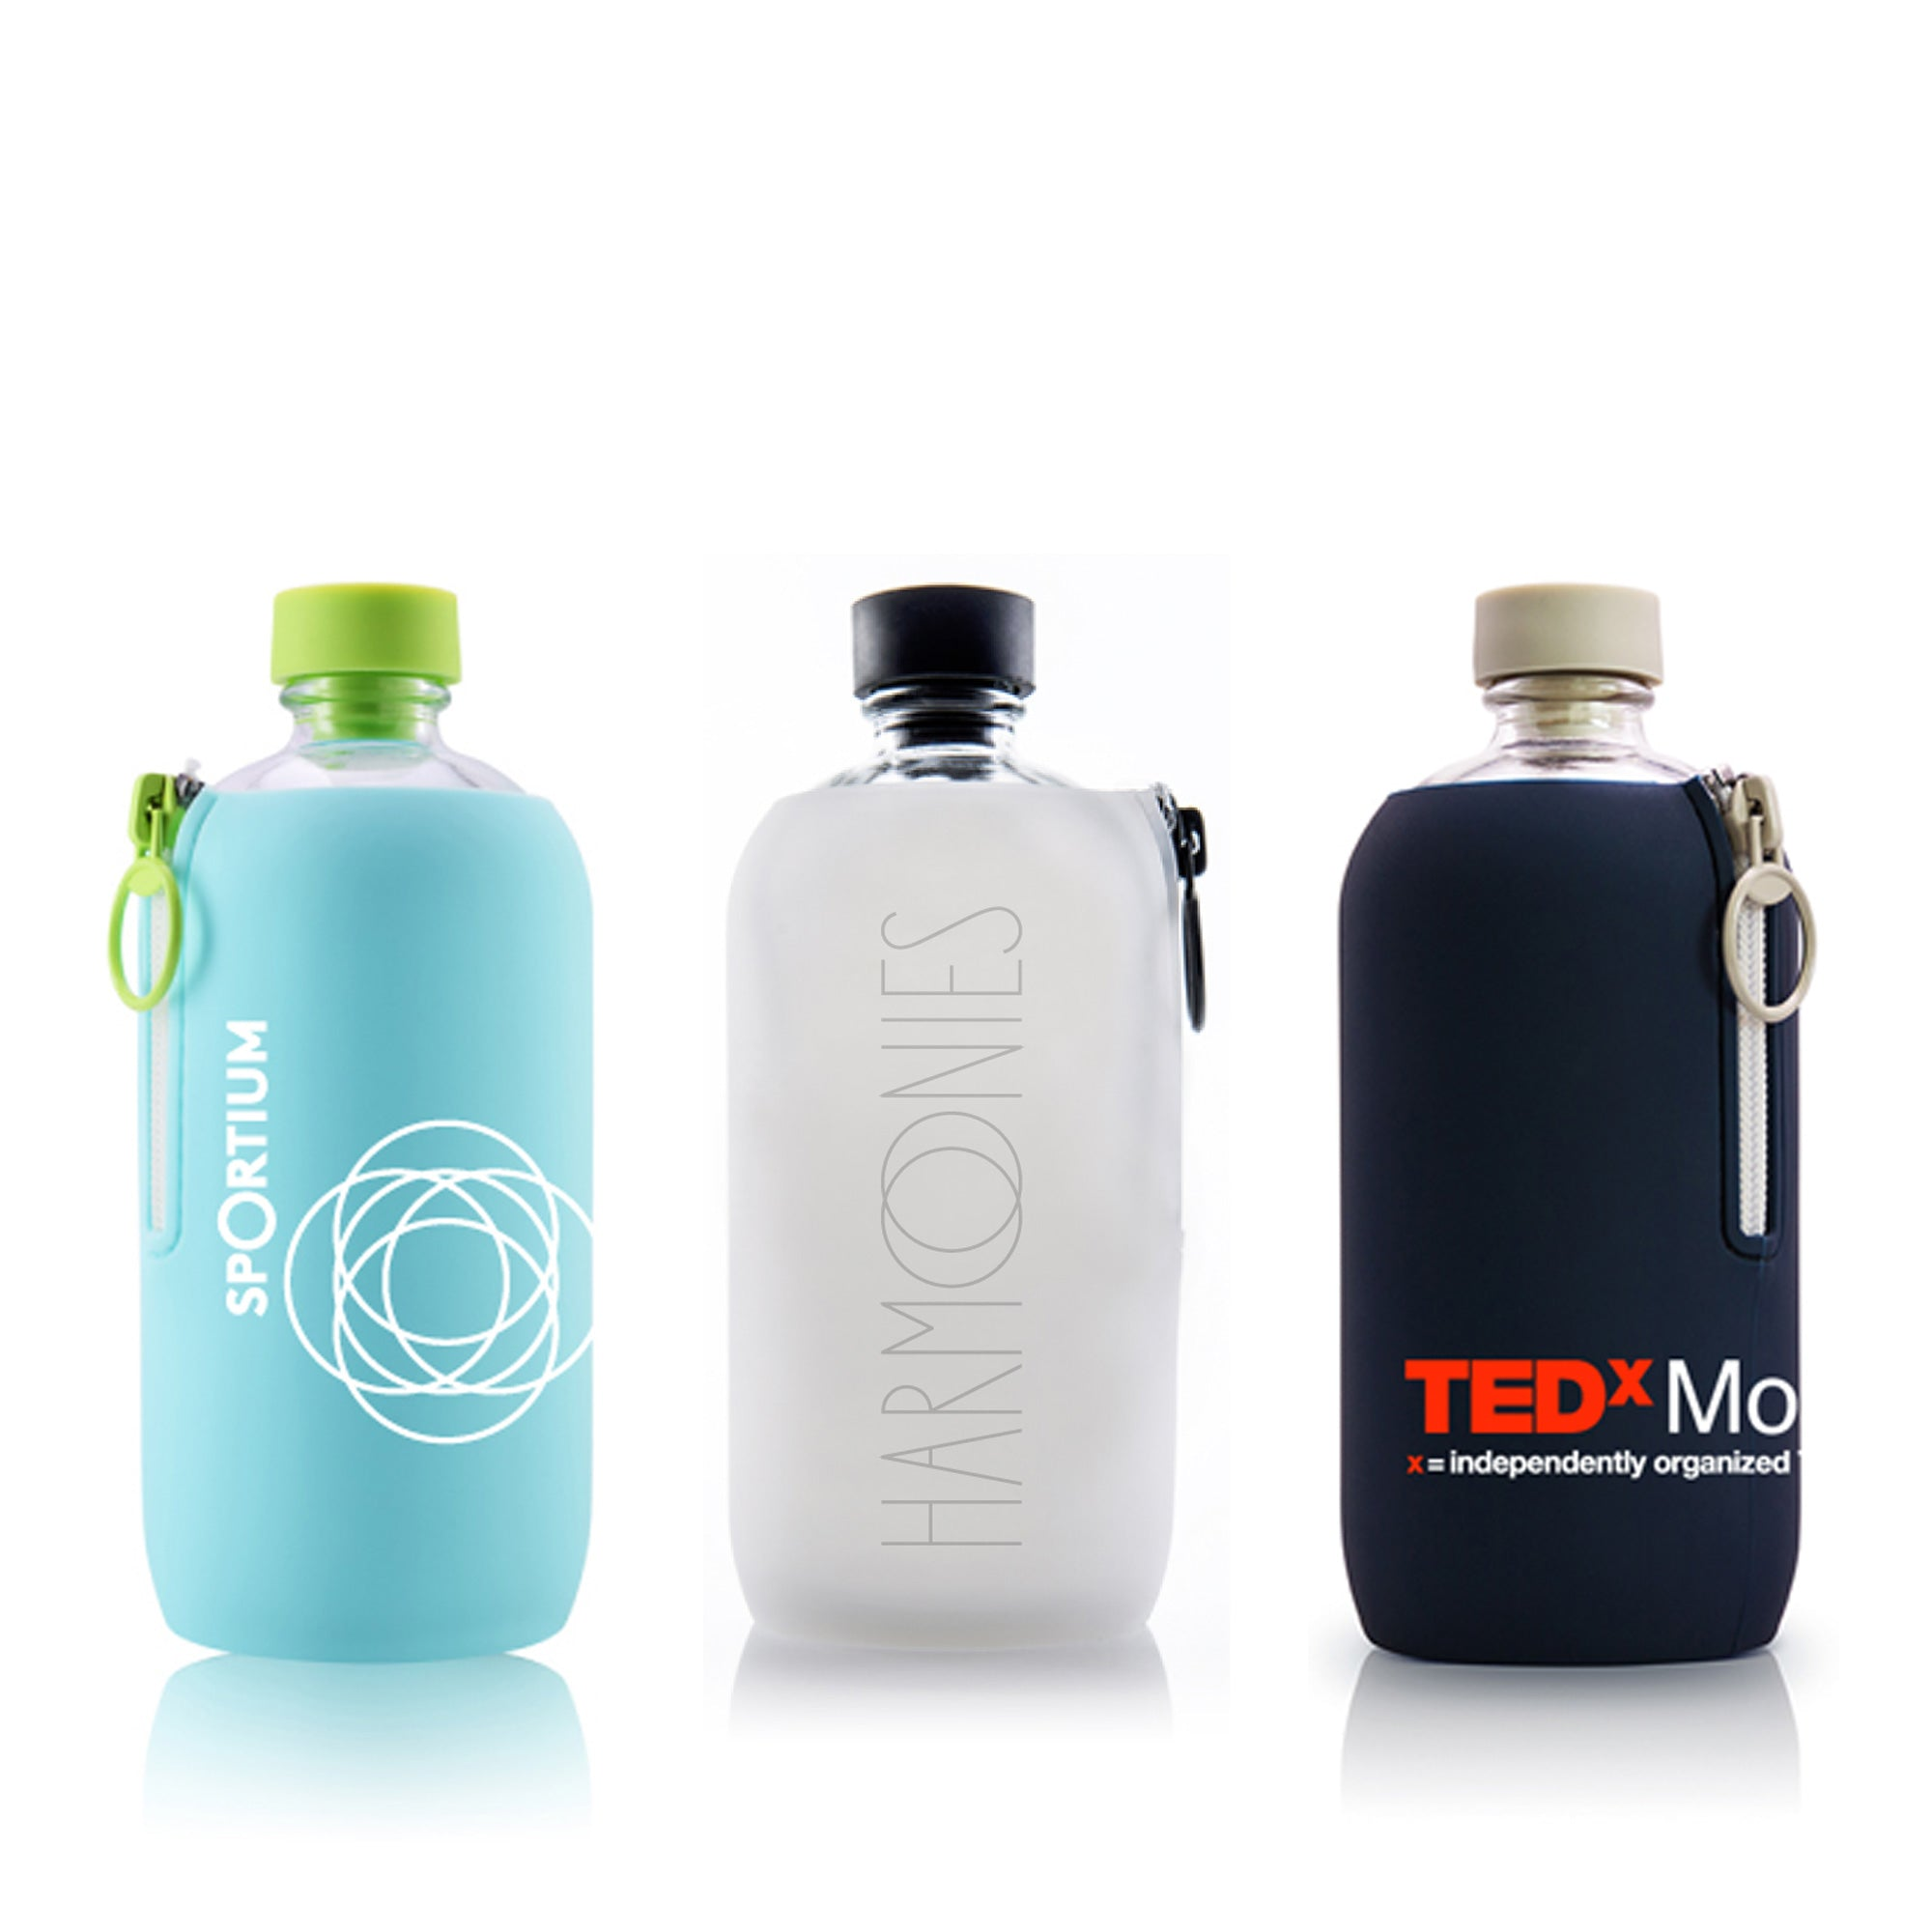 LAB[O] | The Water Bottle